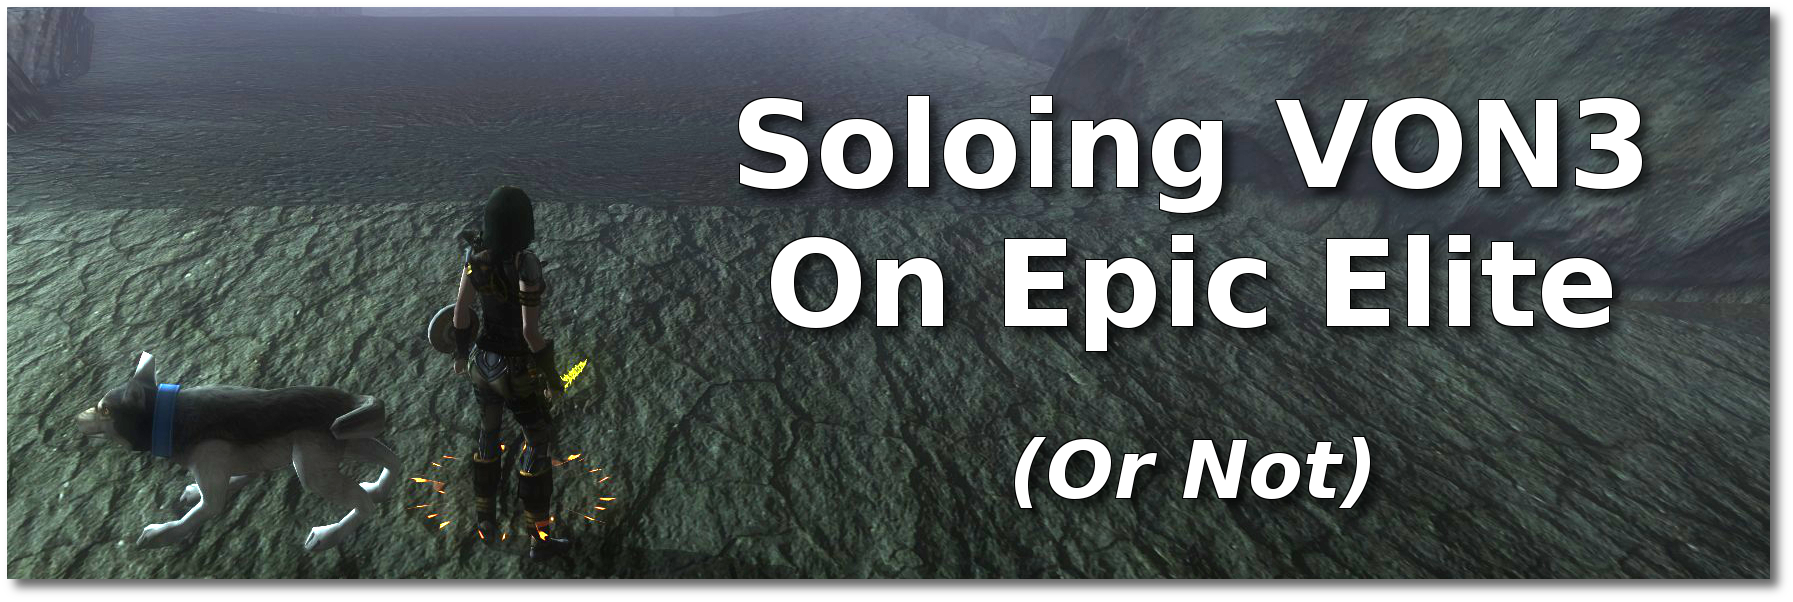 Soloing VON3 on EE - or Not